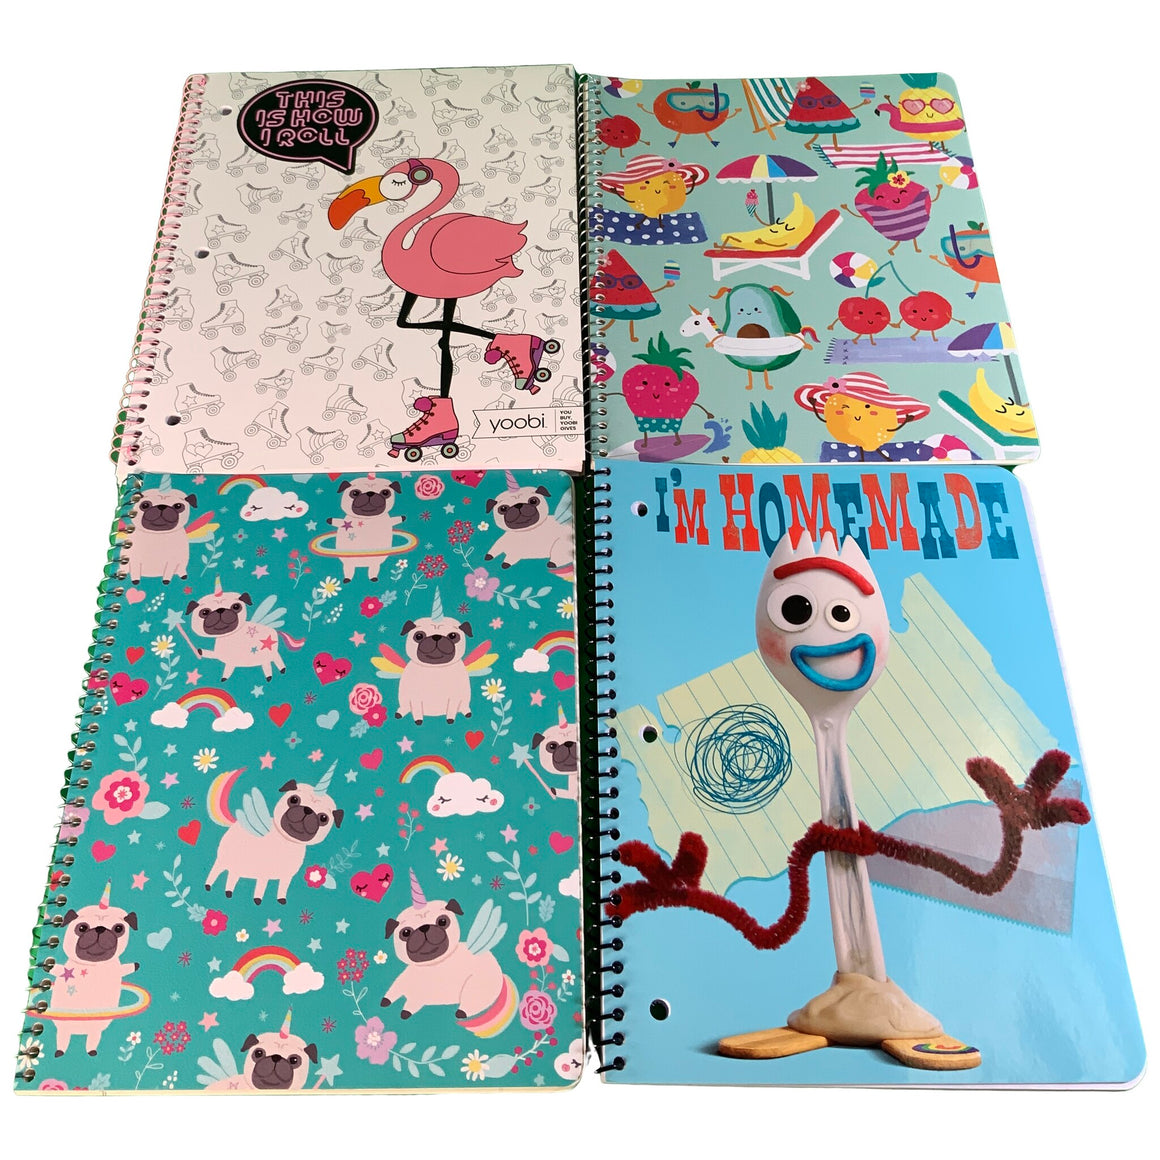 1 Subject Notebook - I'M Homemade & 1 Subject Notebook - Dog Unicorn & 1 Subject Notebook - Fruit Vacation & Spiral Notebook, College Ruled - This Is How I Roll Flamingo - Yoobi & Greenroom & Innovative Designs